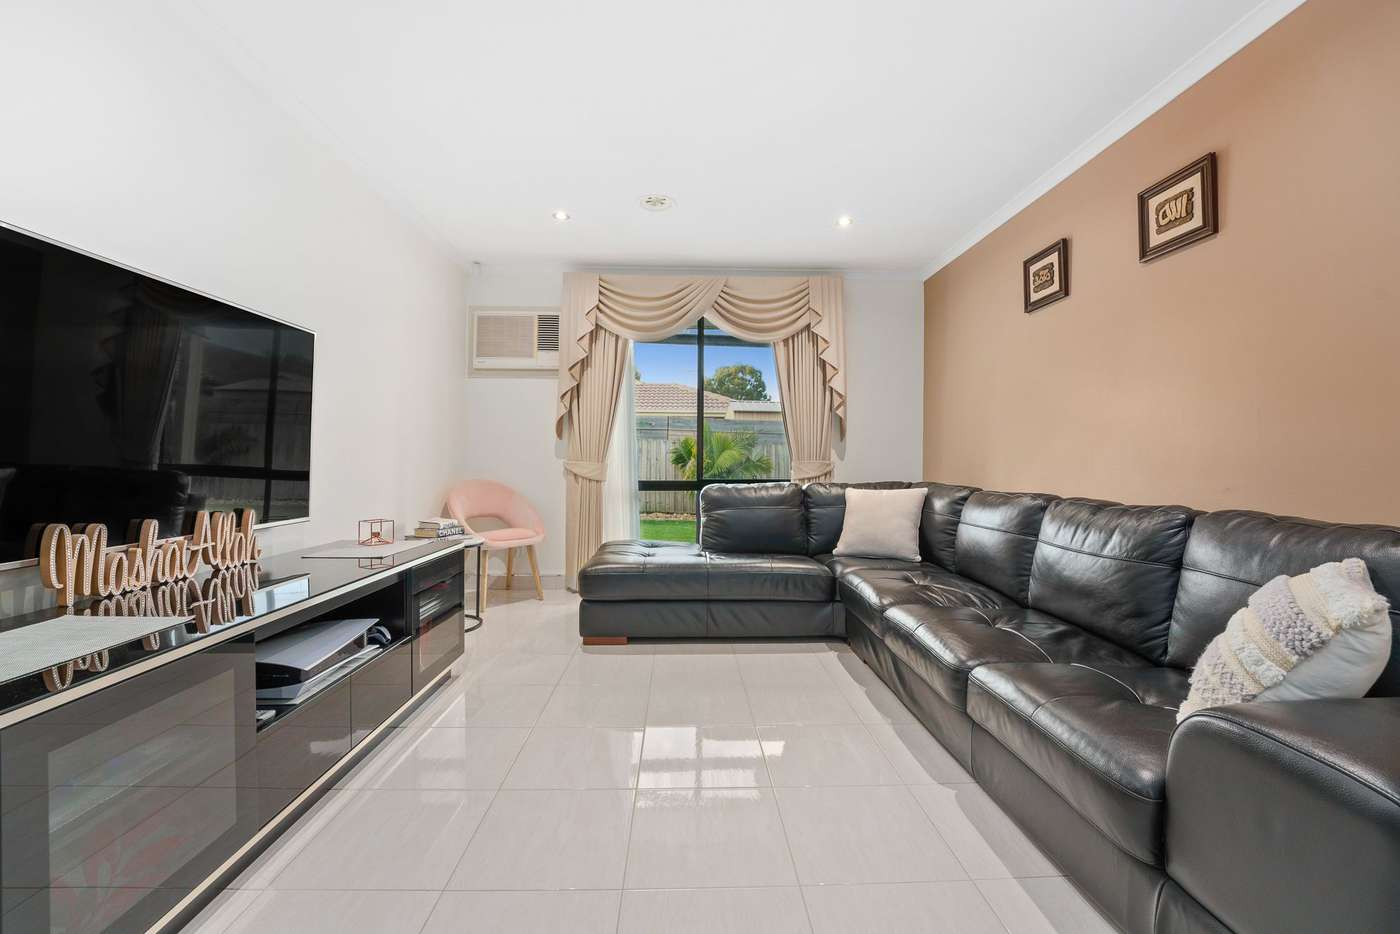 Sixth view of Homely house listing, 2 Darriwill Close, Delahey VIC 3037